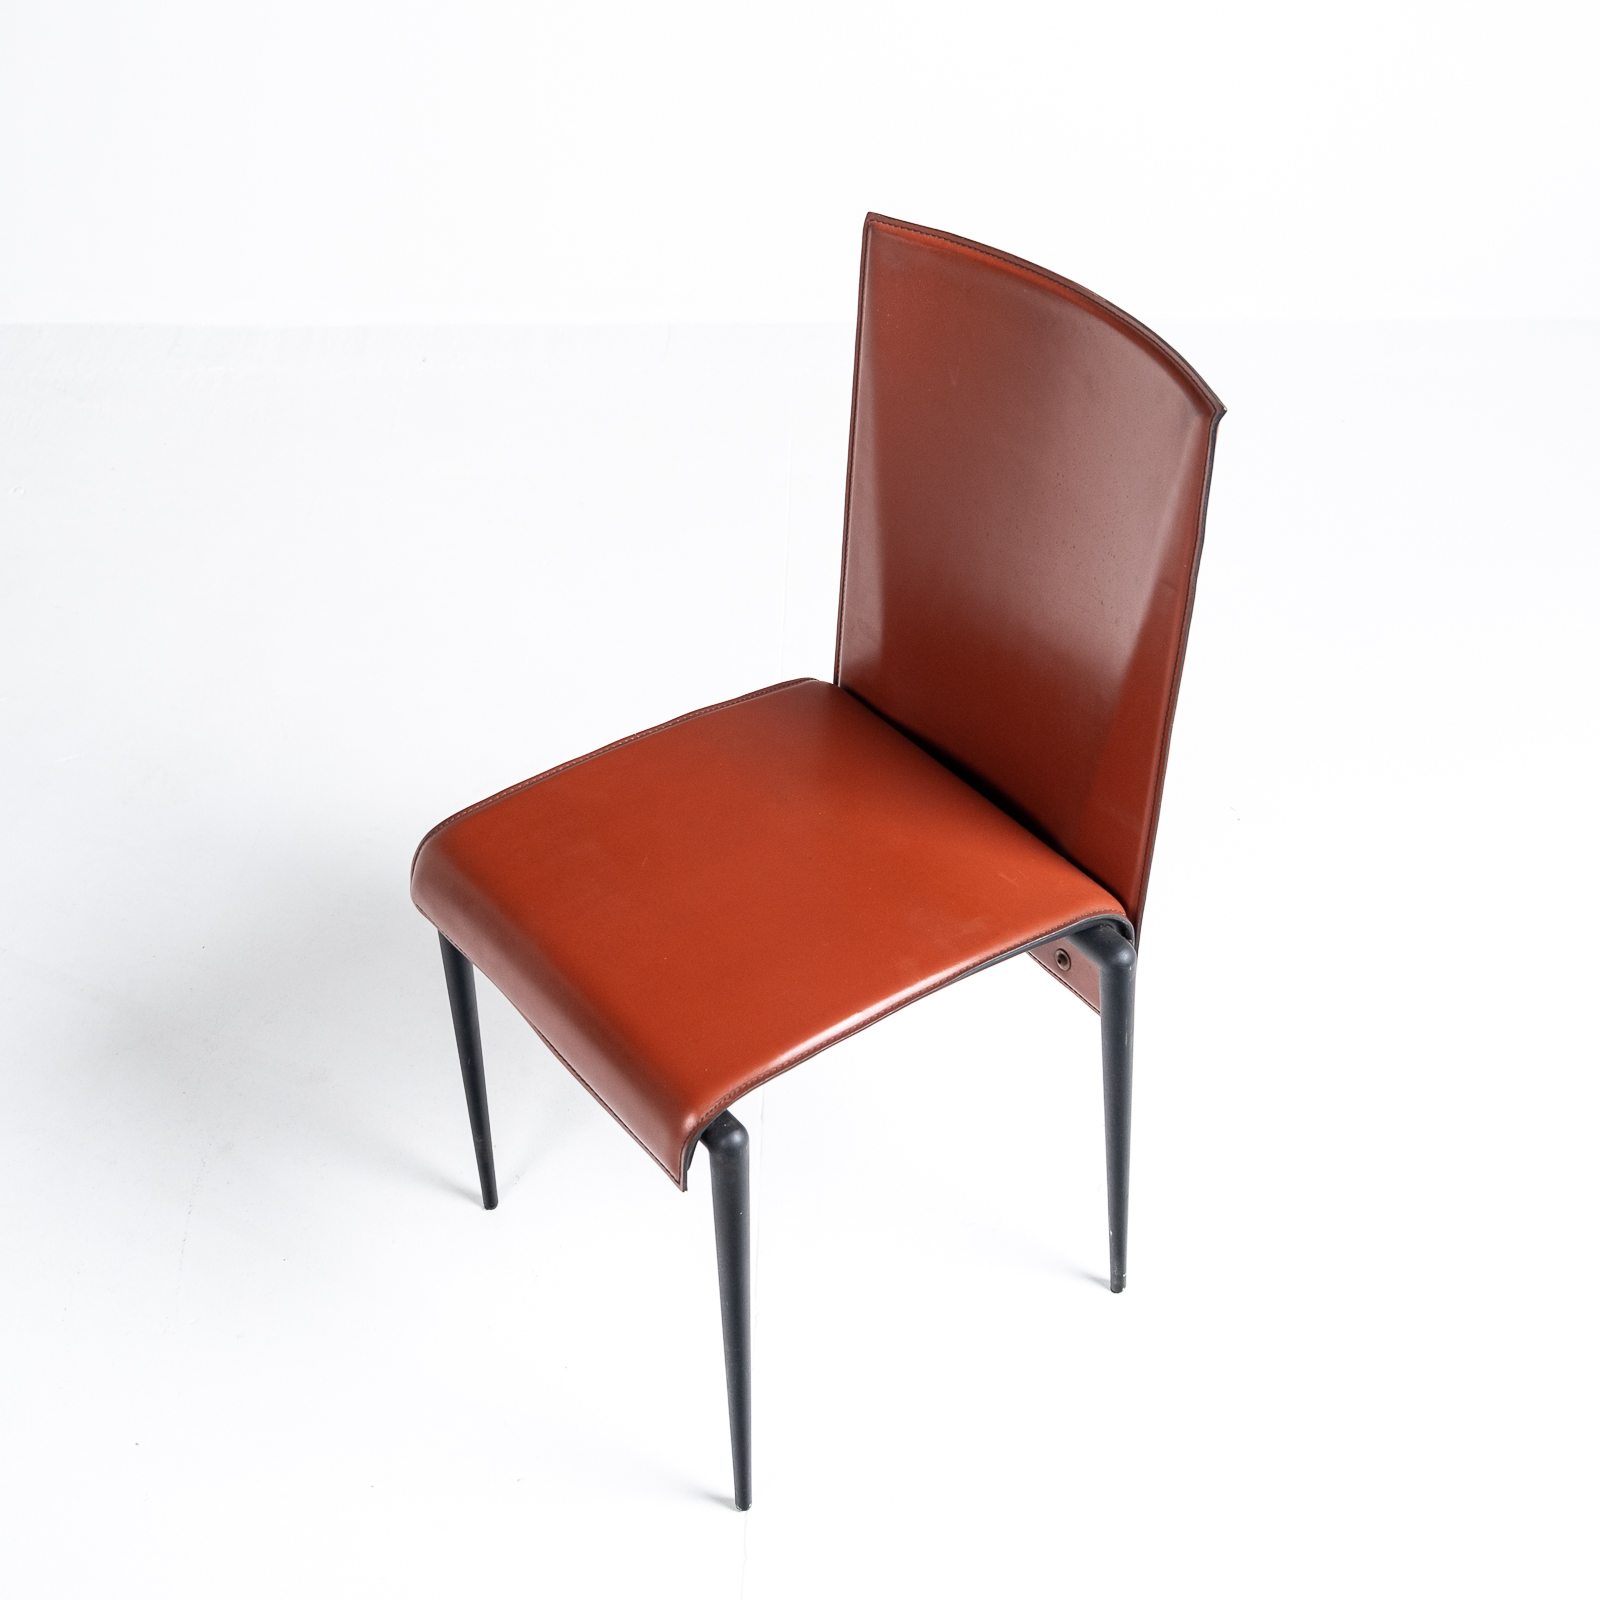 High Back Chair By Cidue In Red Leather, 1970s, Italy Hero